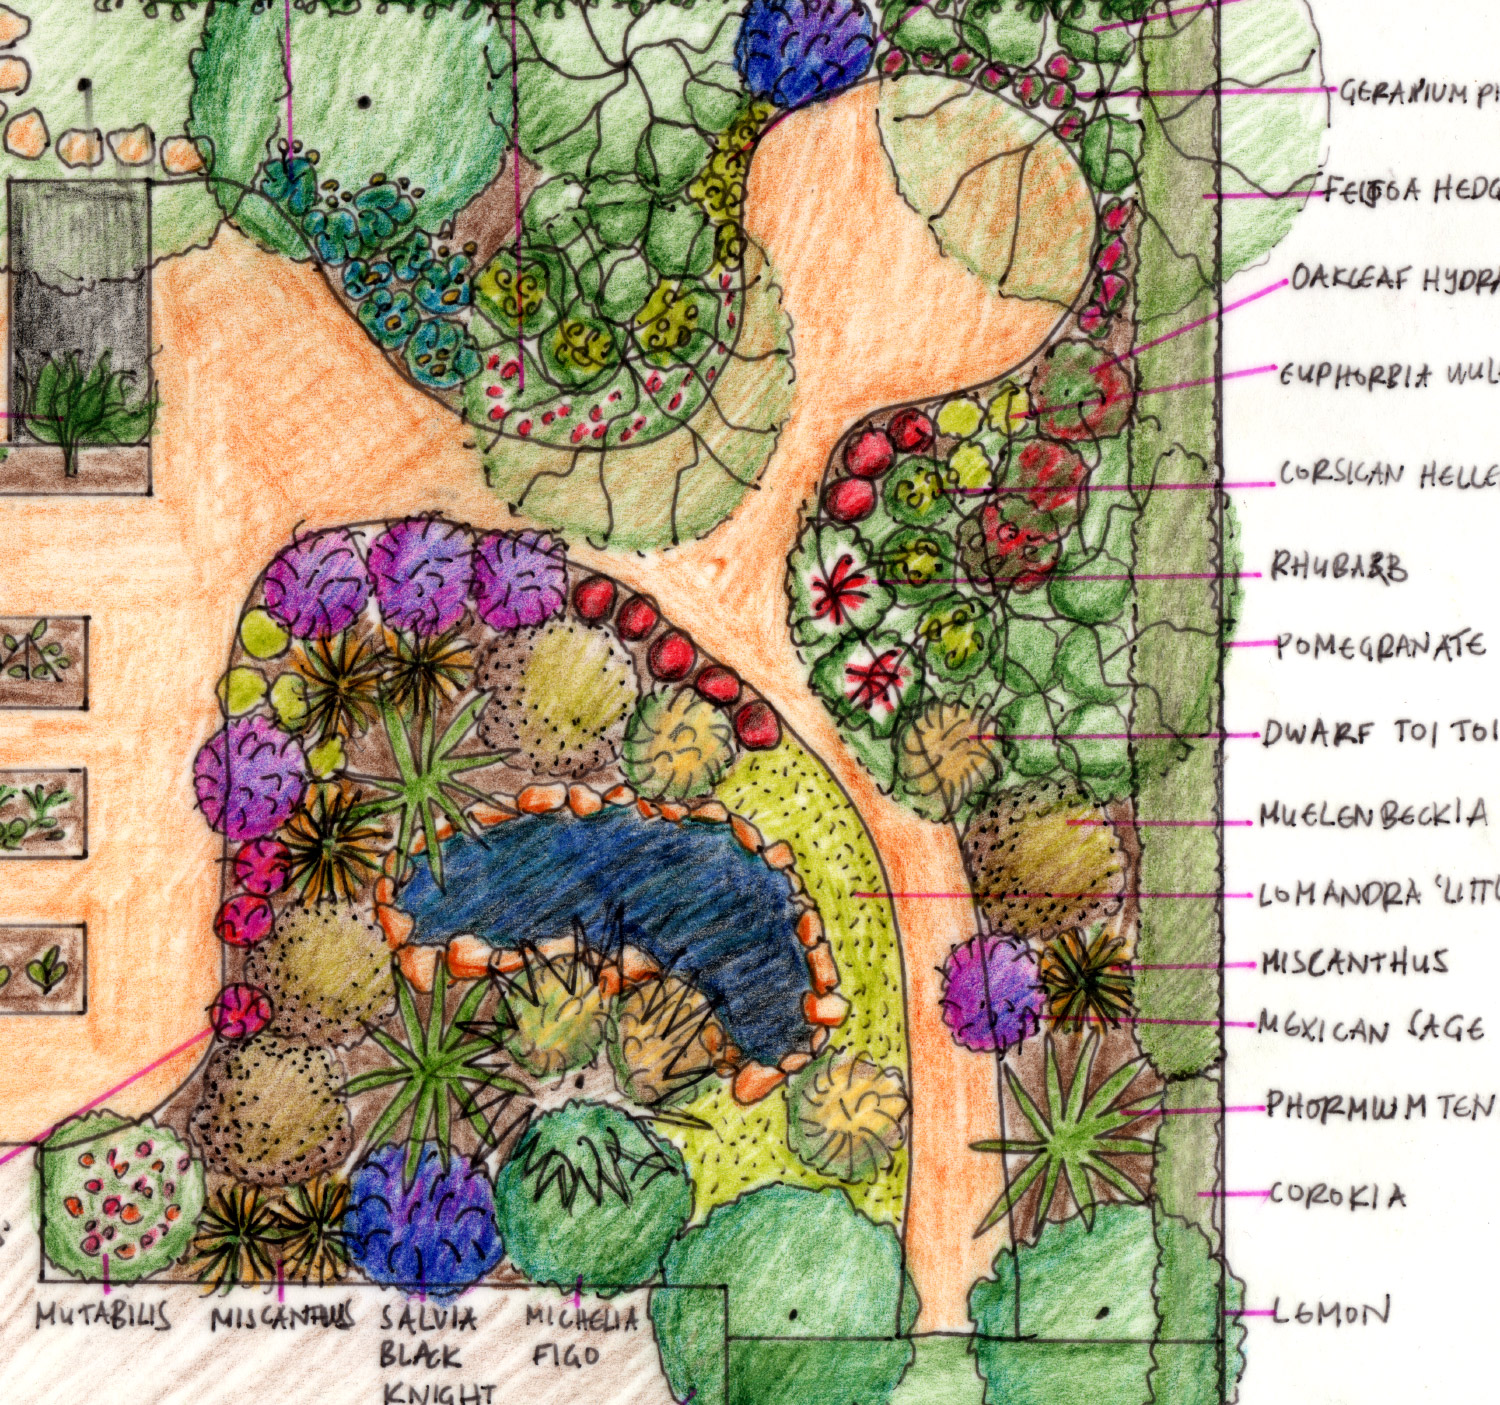 Garden Consultations Daily Gardener Schematic If You Need Further Help I Can Draw Up A Concept Design For Your Outdoor Space Or Take It To The Next Level With Comprehensive